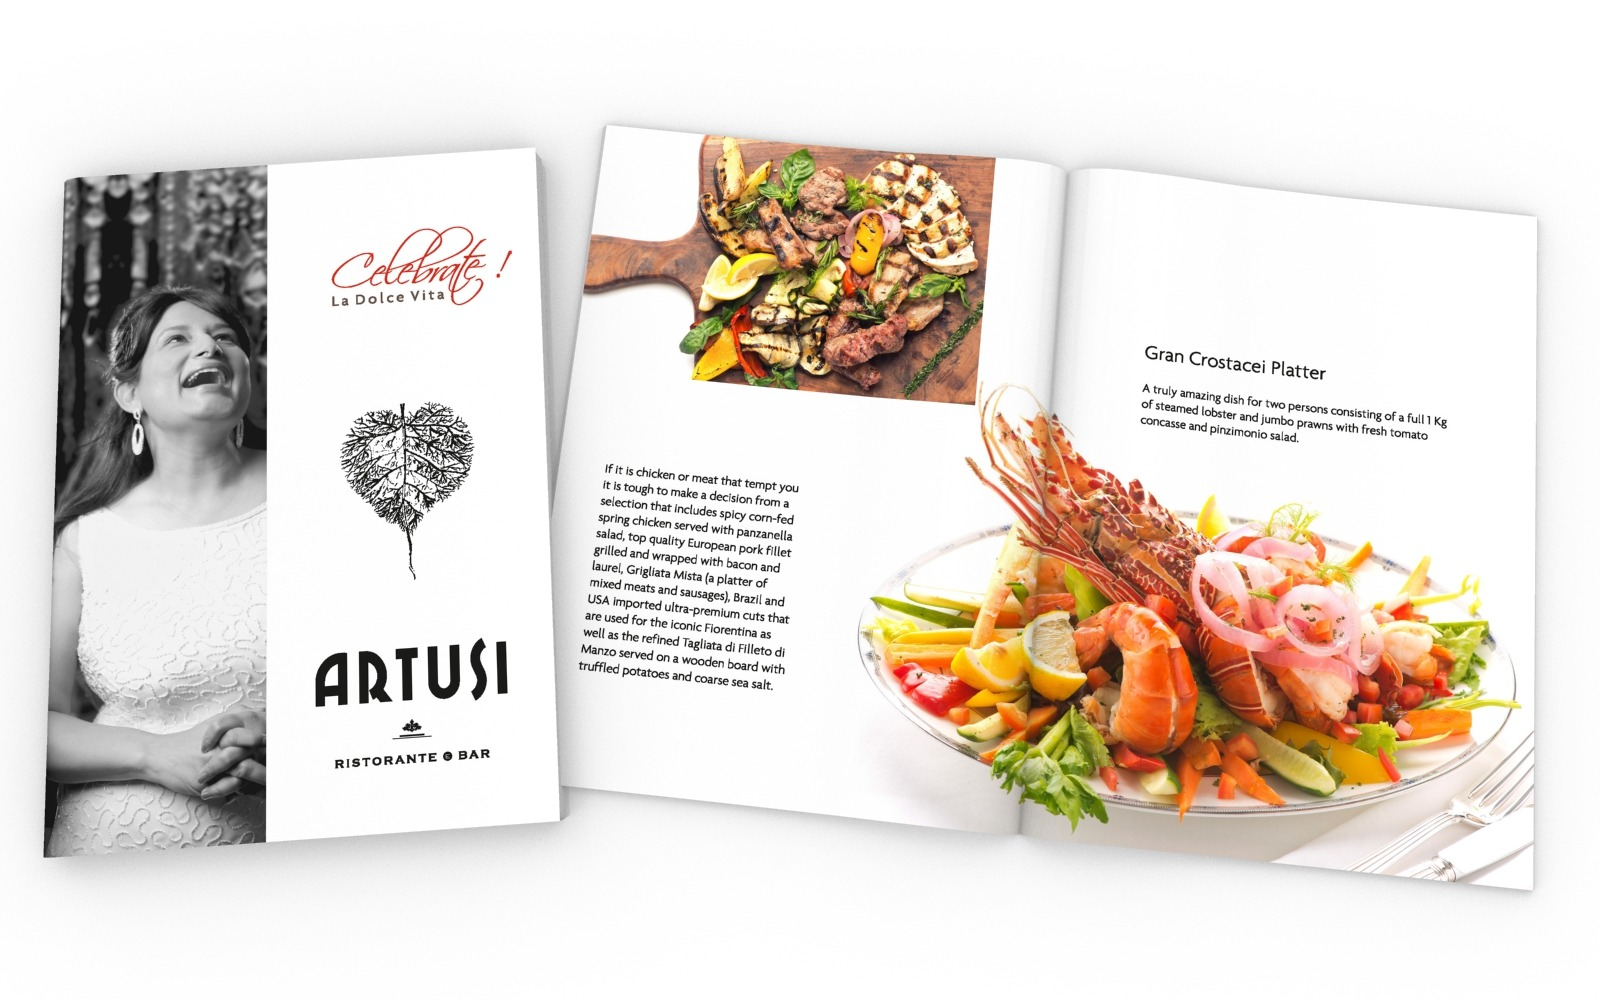 Brochure/ Catalog/ Menu design for an Intalian Fine Dining Restauarant, Artusi